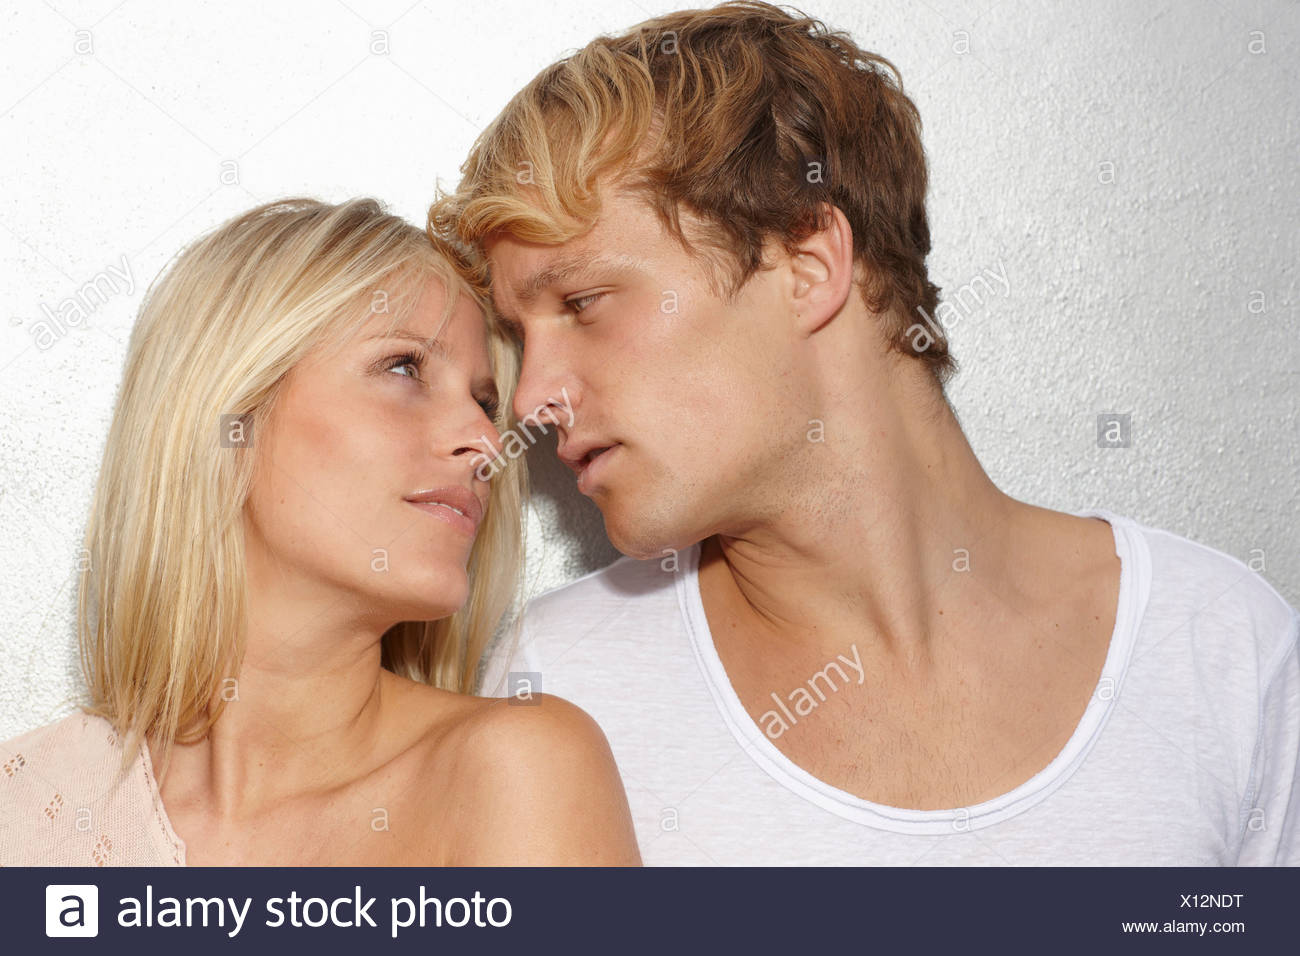 Portrait of young couple looking into each others eyes - Stock Image